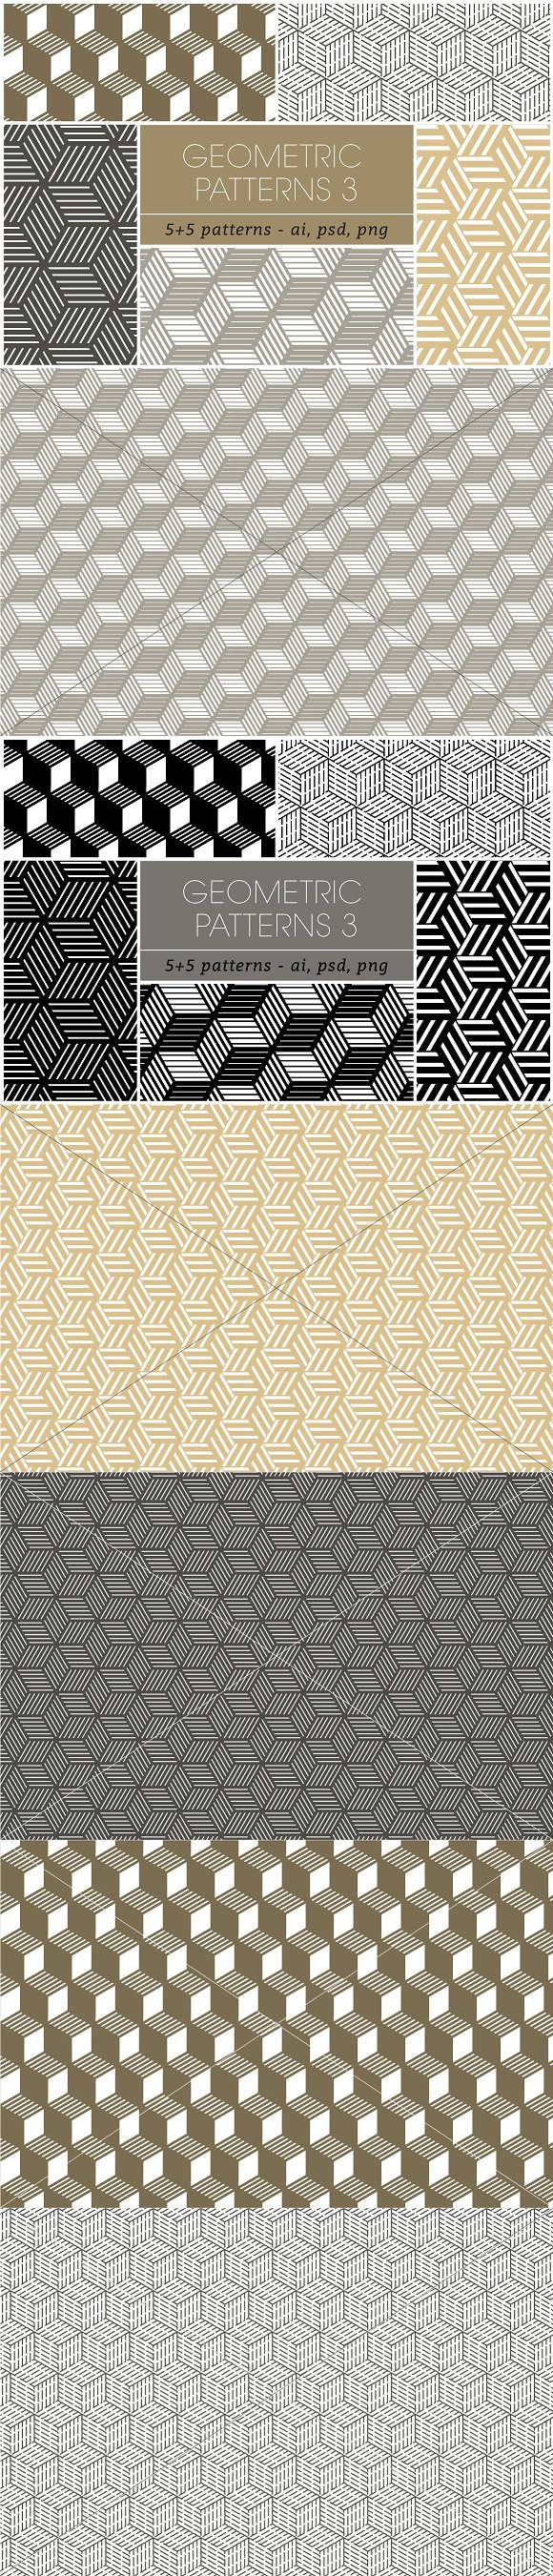 Seamless Geometric Patterns 3. Patterns